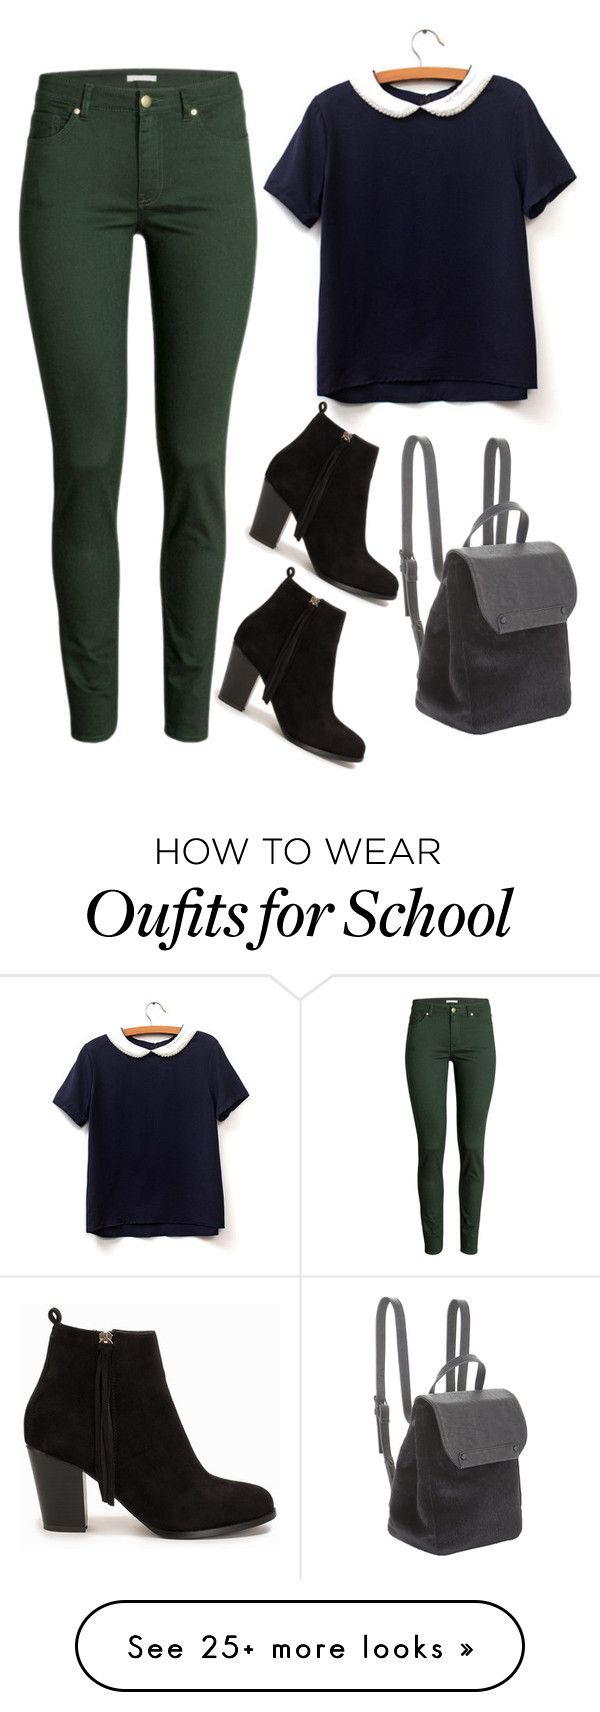 school is my problem by ziva-vrabac on Polyvore featuring H&M, BCBGeneration and Nly Shoes #nikefreeoutfit